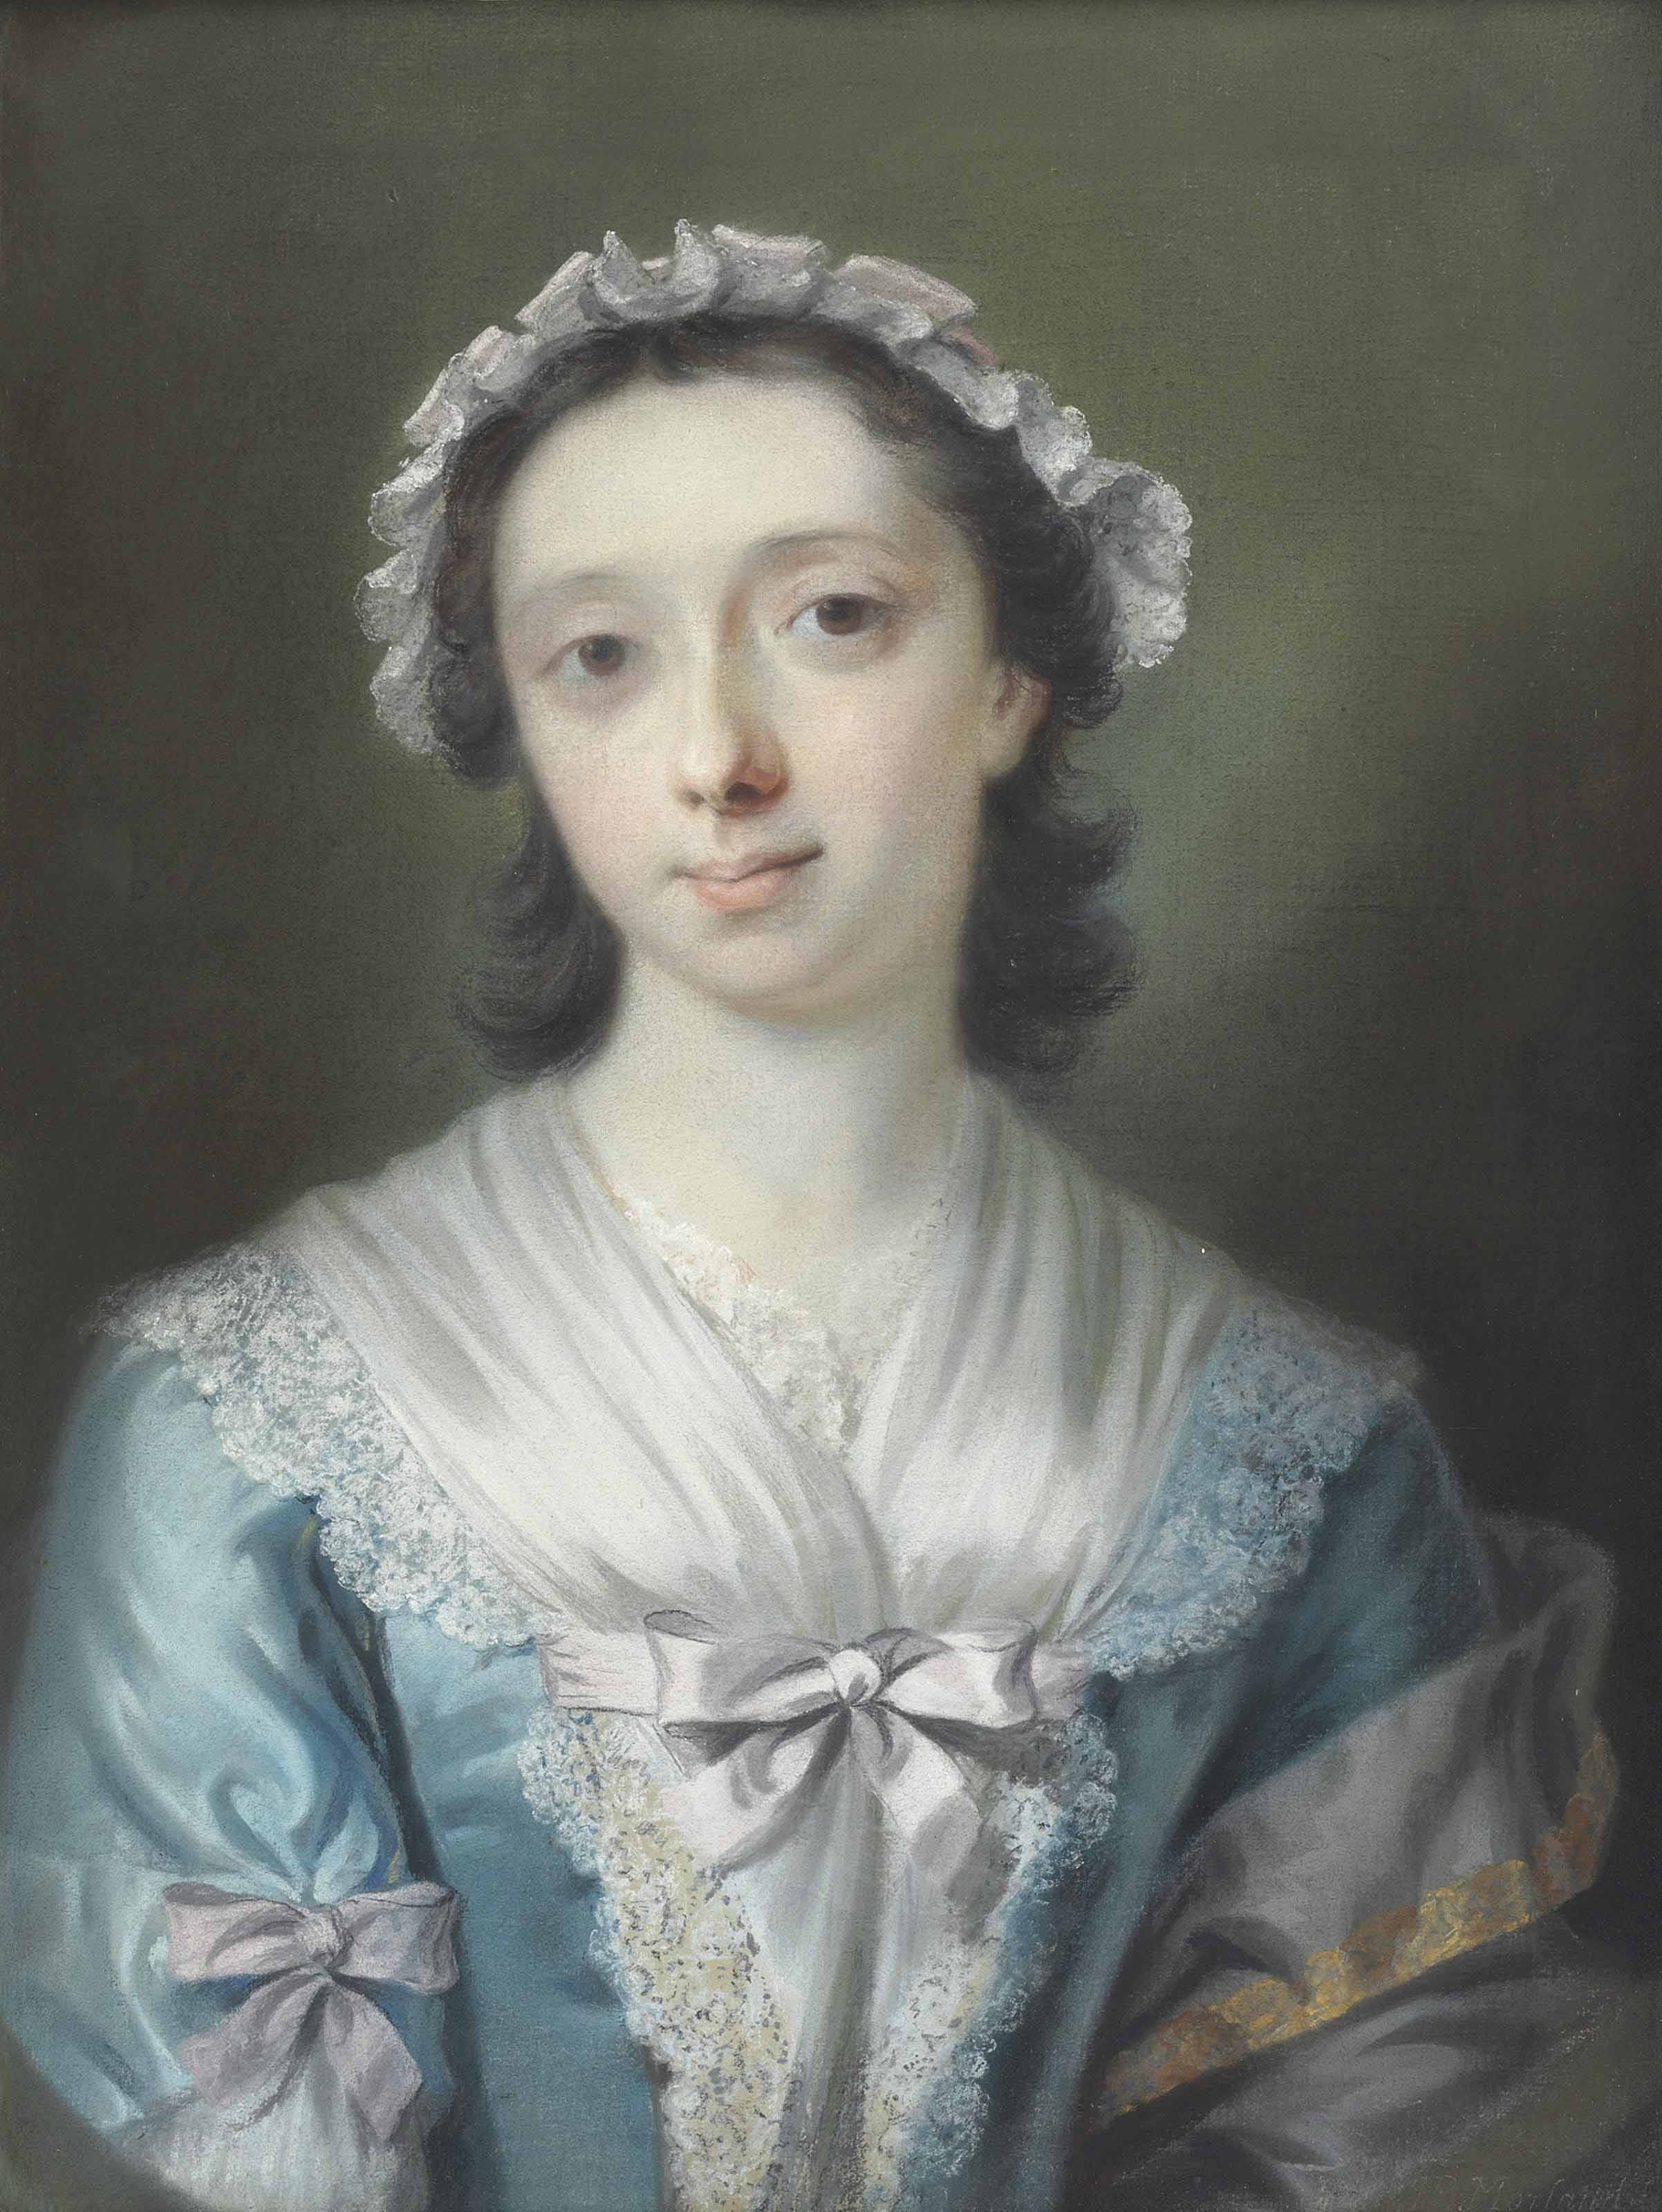 Portrait of Mary Tweedie (c. 1704-1784), half-length, in a blue lace-trimmed dress and white bonnet